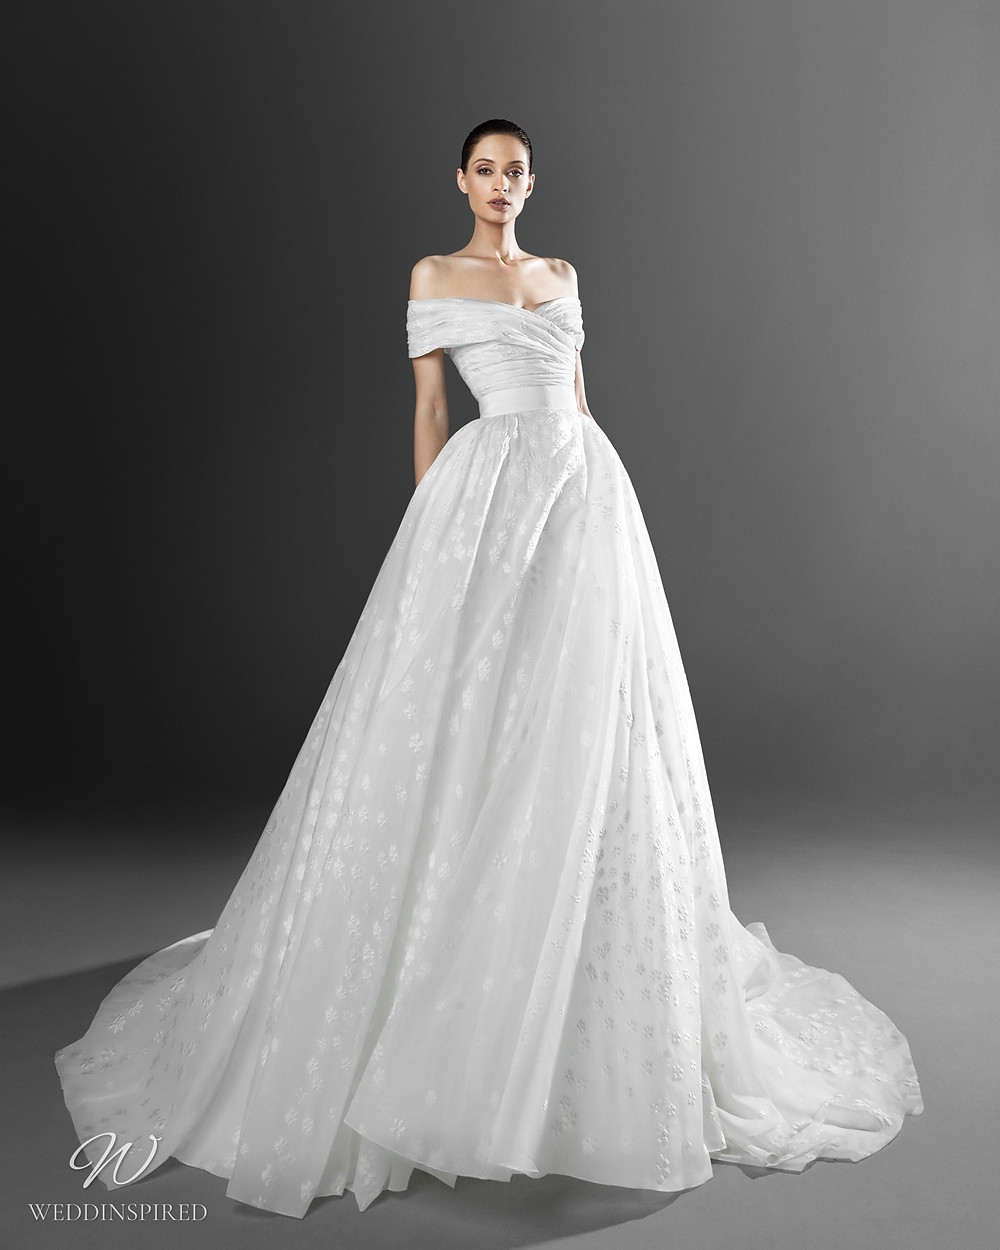 A Zuhair Murad ball gown off the shoulder princess wedding dress